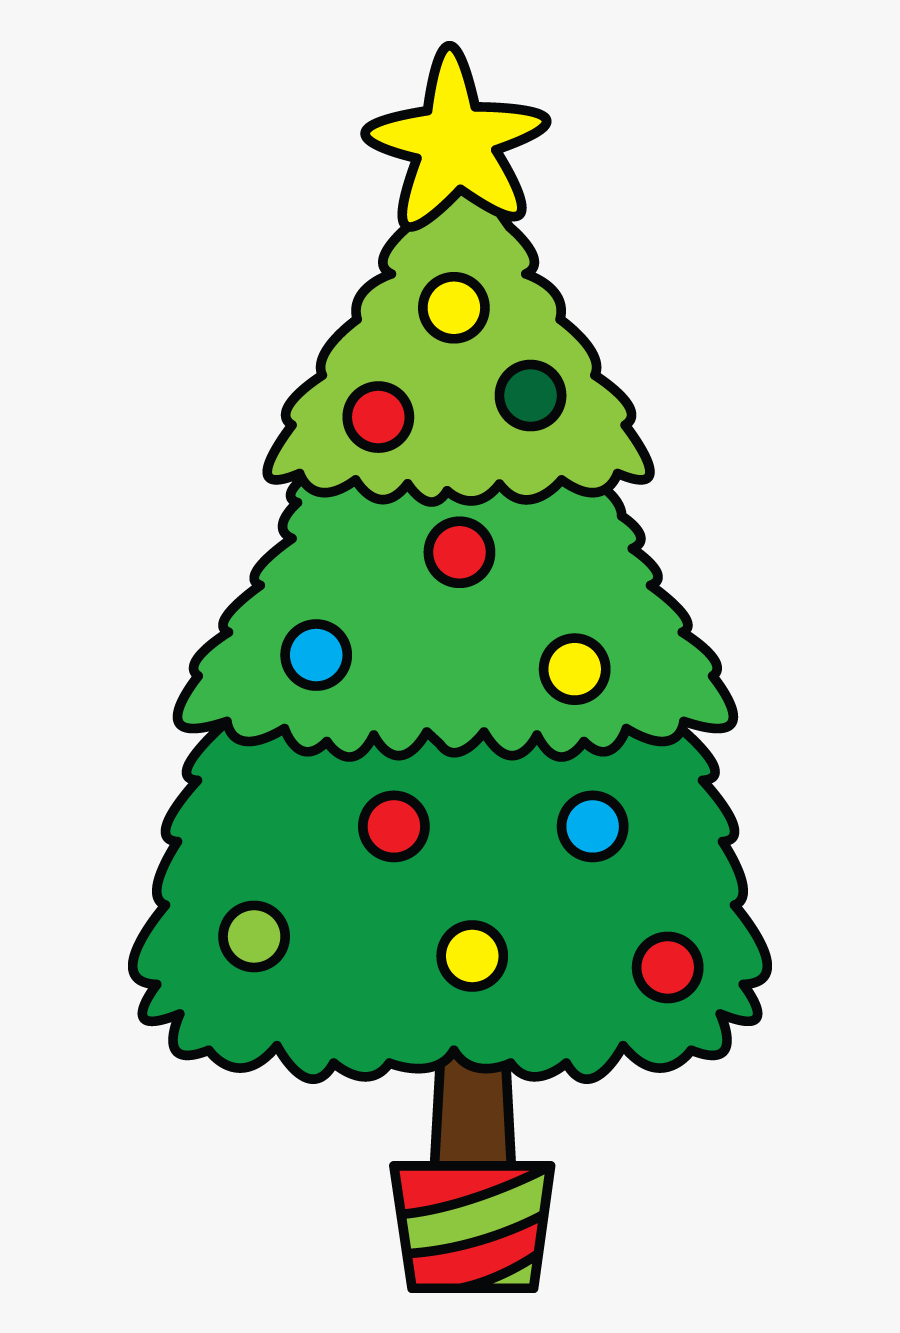 Next In The Line Of Christmas Items Is A Christmas - Do Christmas Tree Drawing, Transparent Clipart